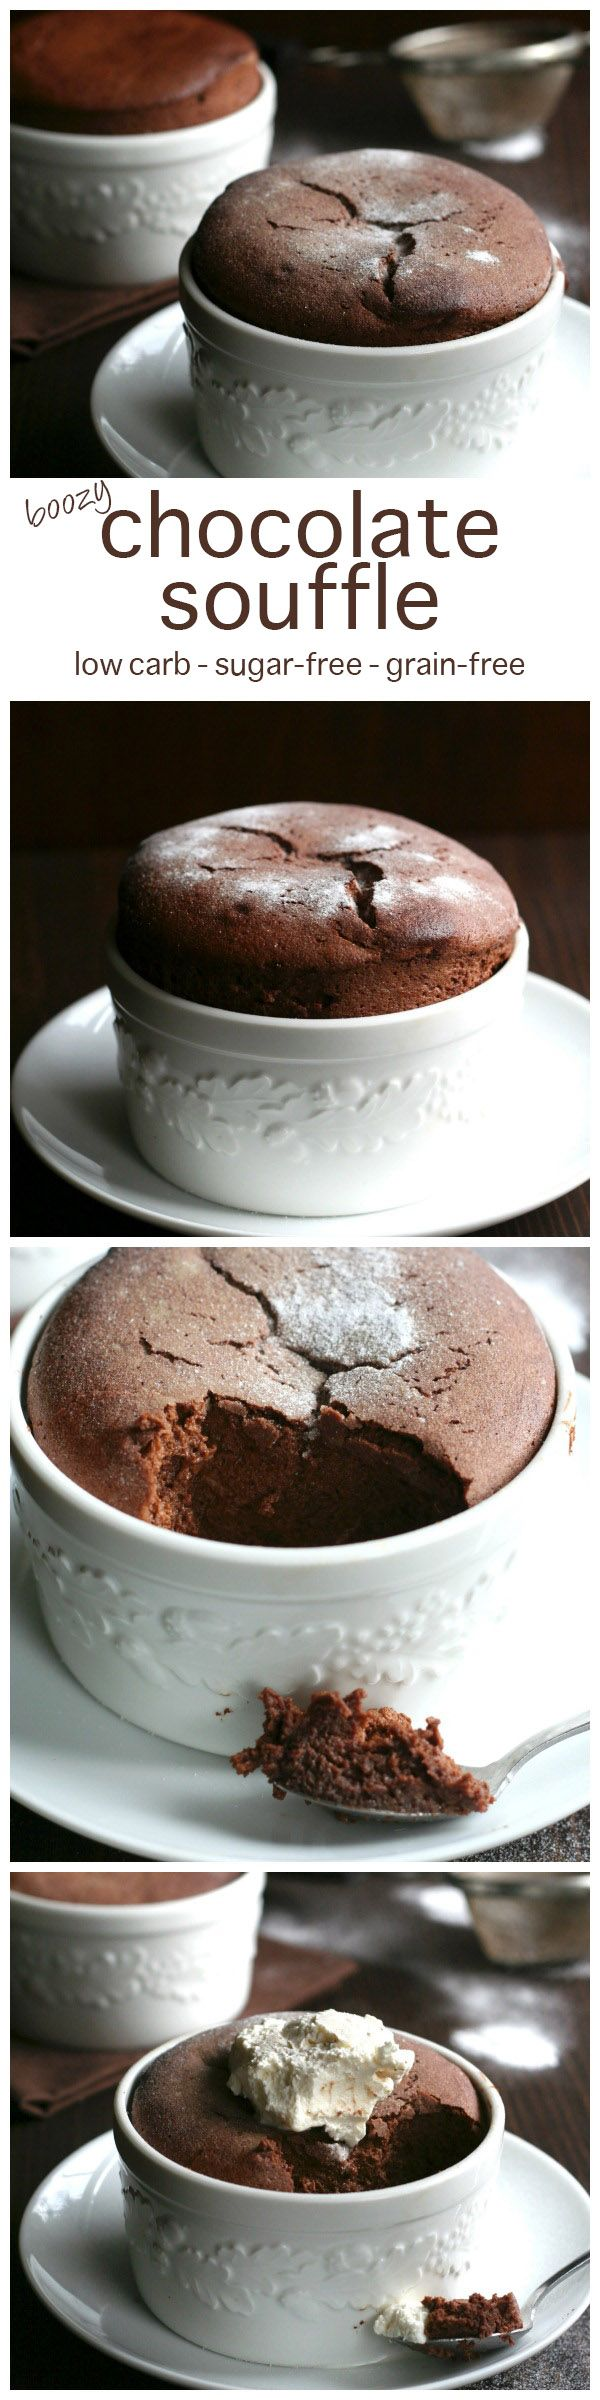 Best Low Carb Chocolate Souffle